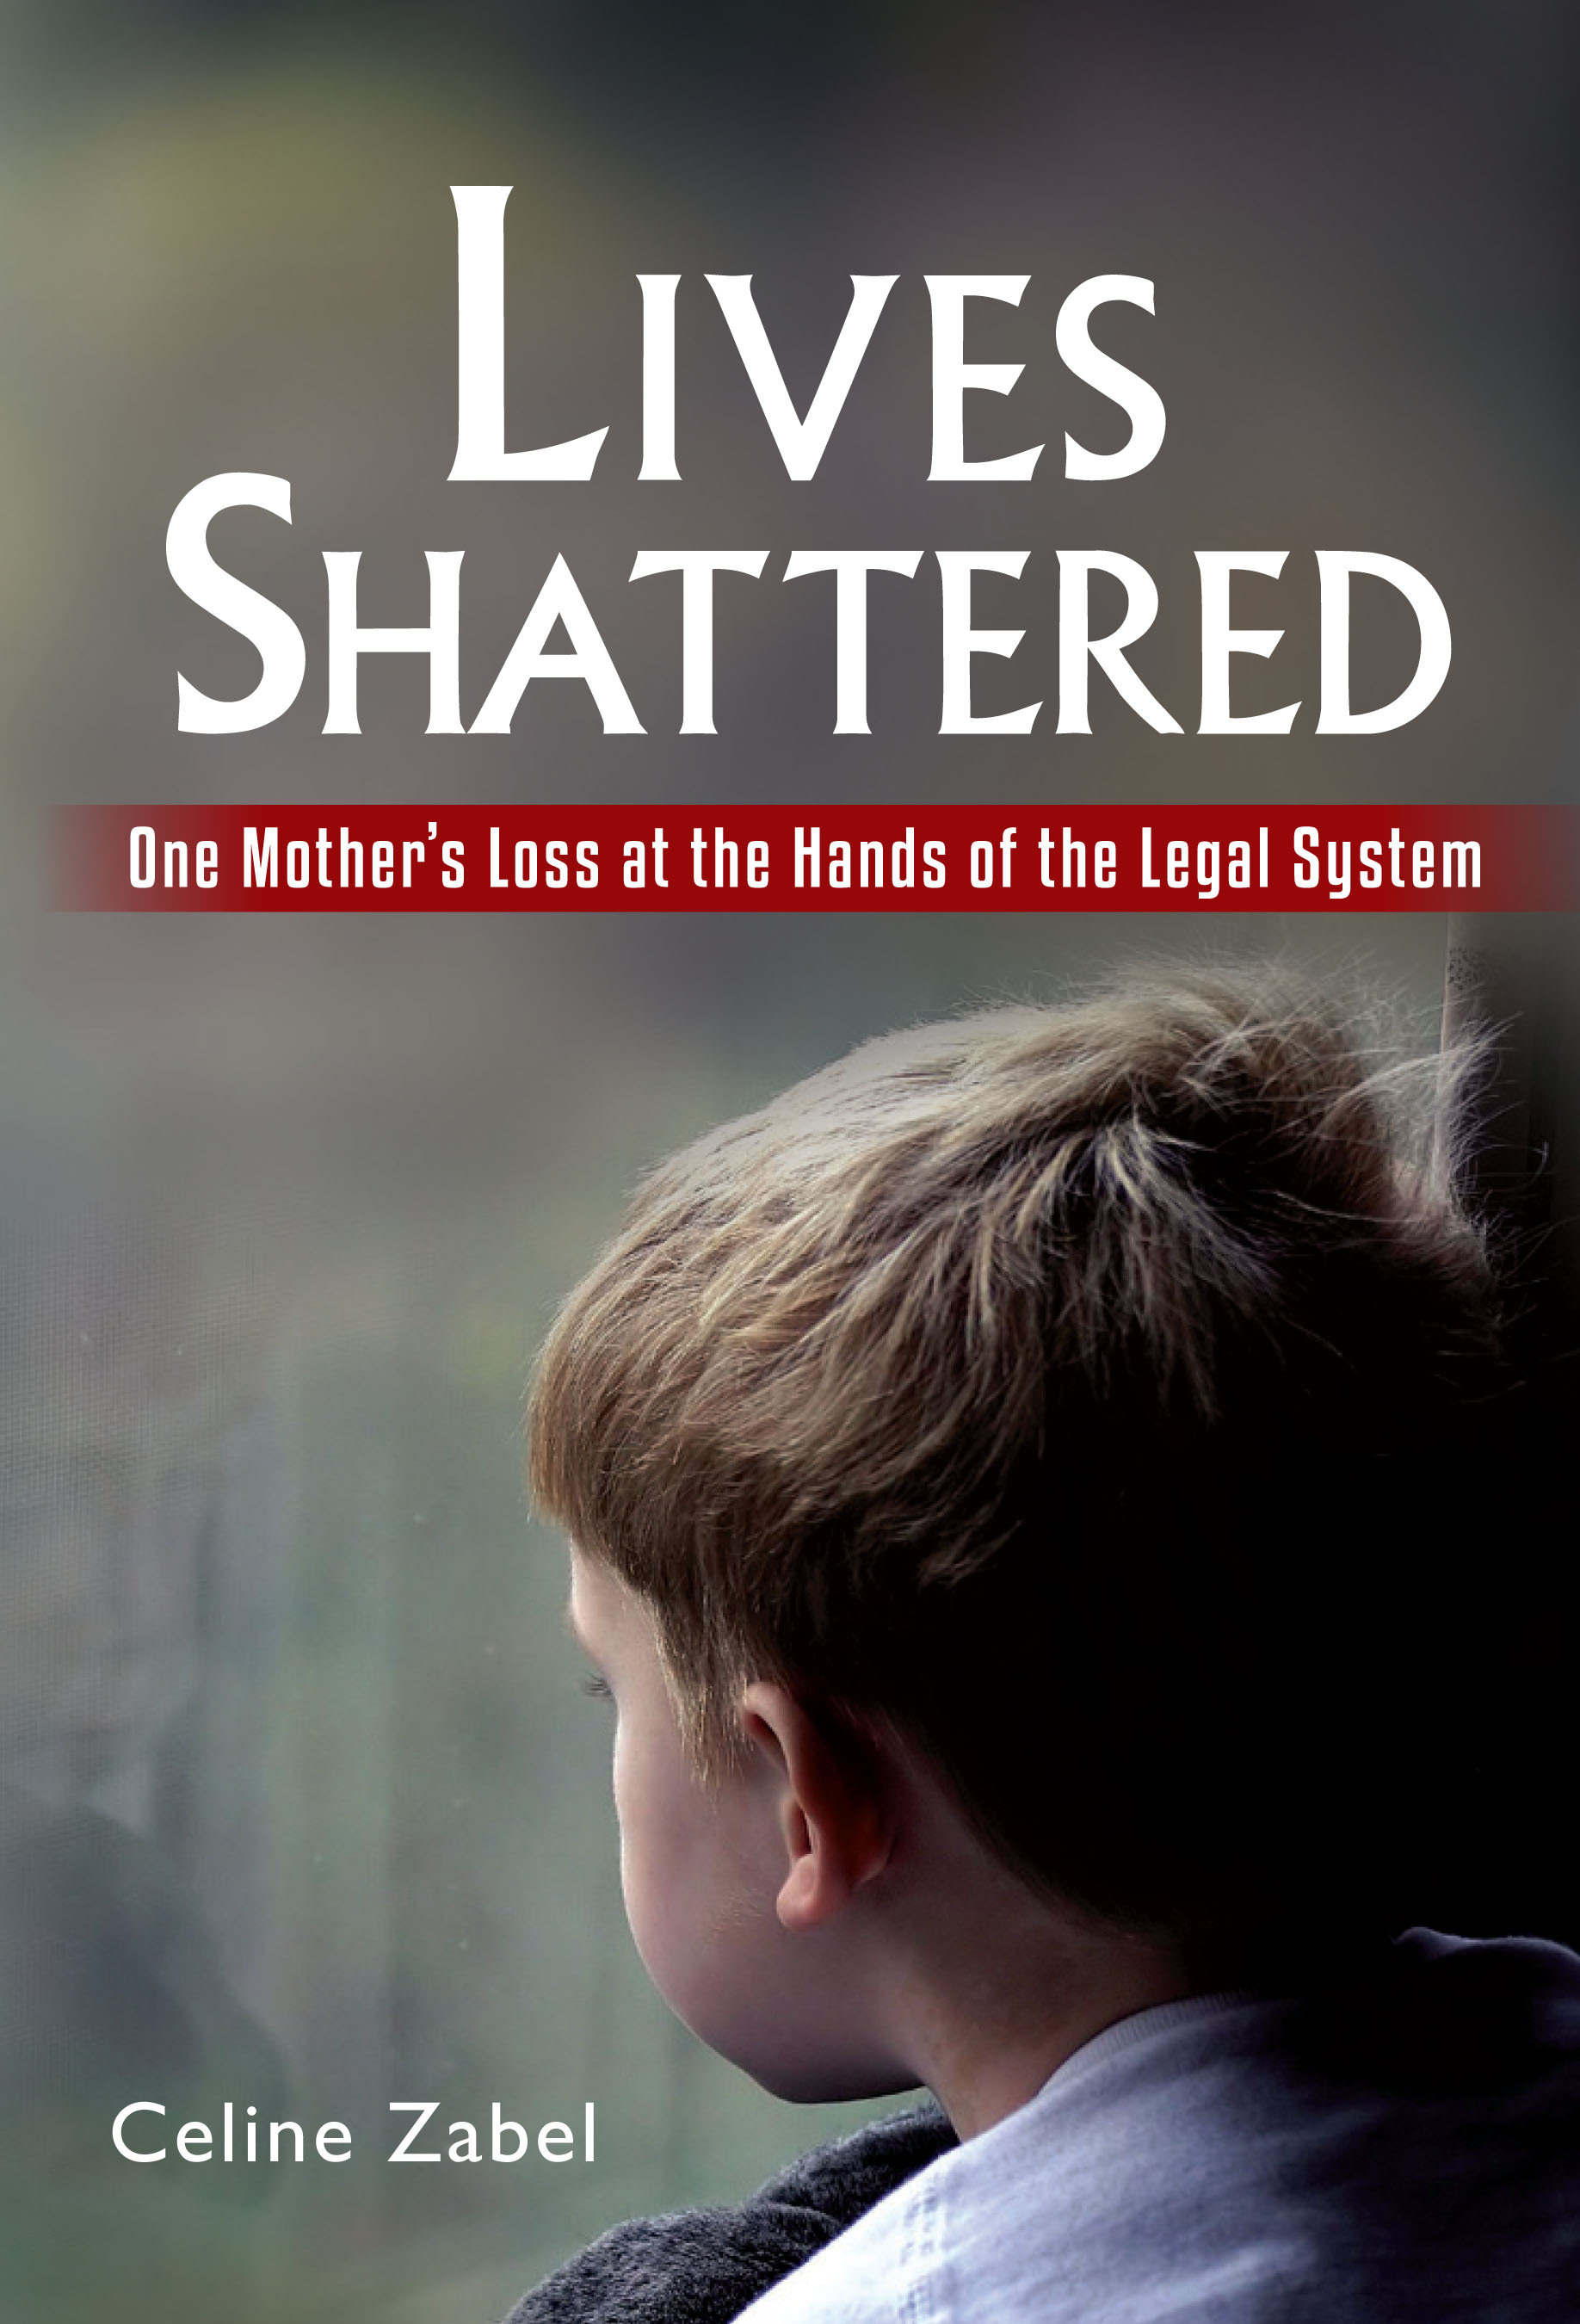 Lives Shattered: One Mother's Loss at the Hands of the Legal System